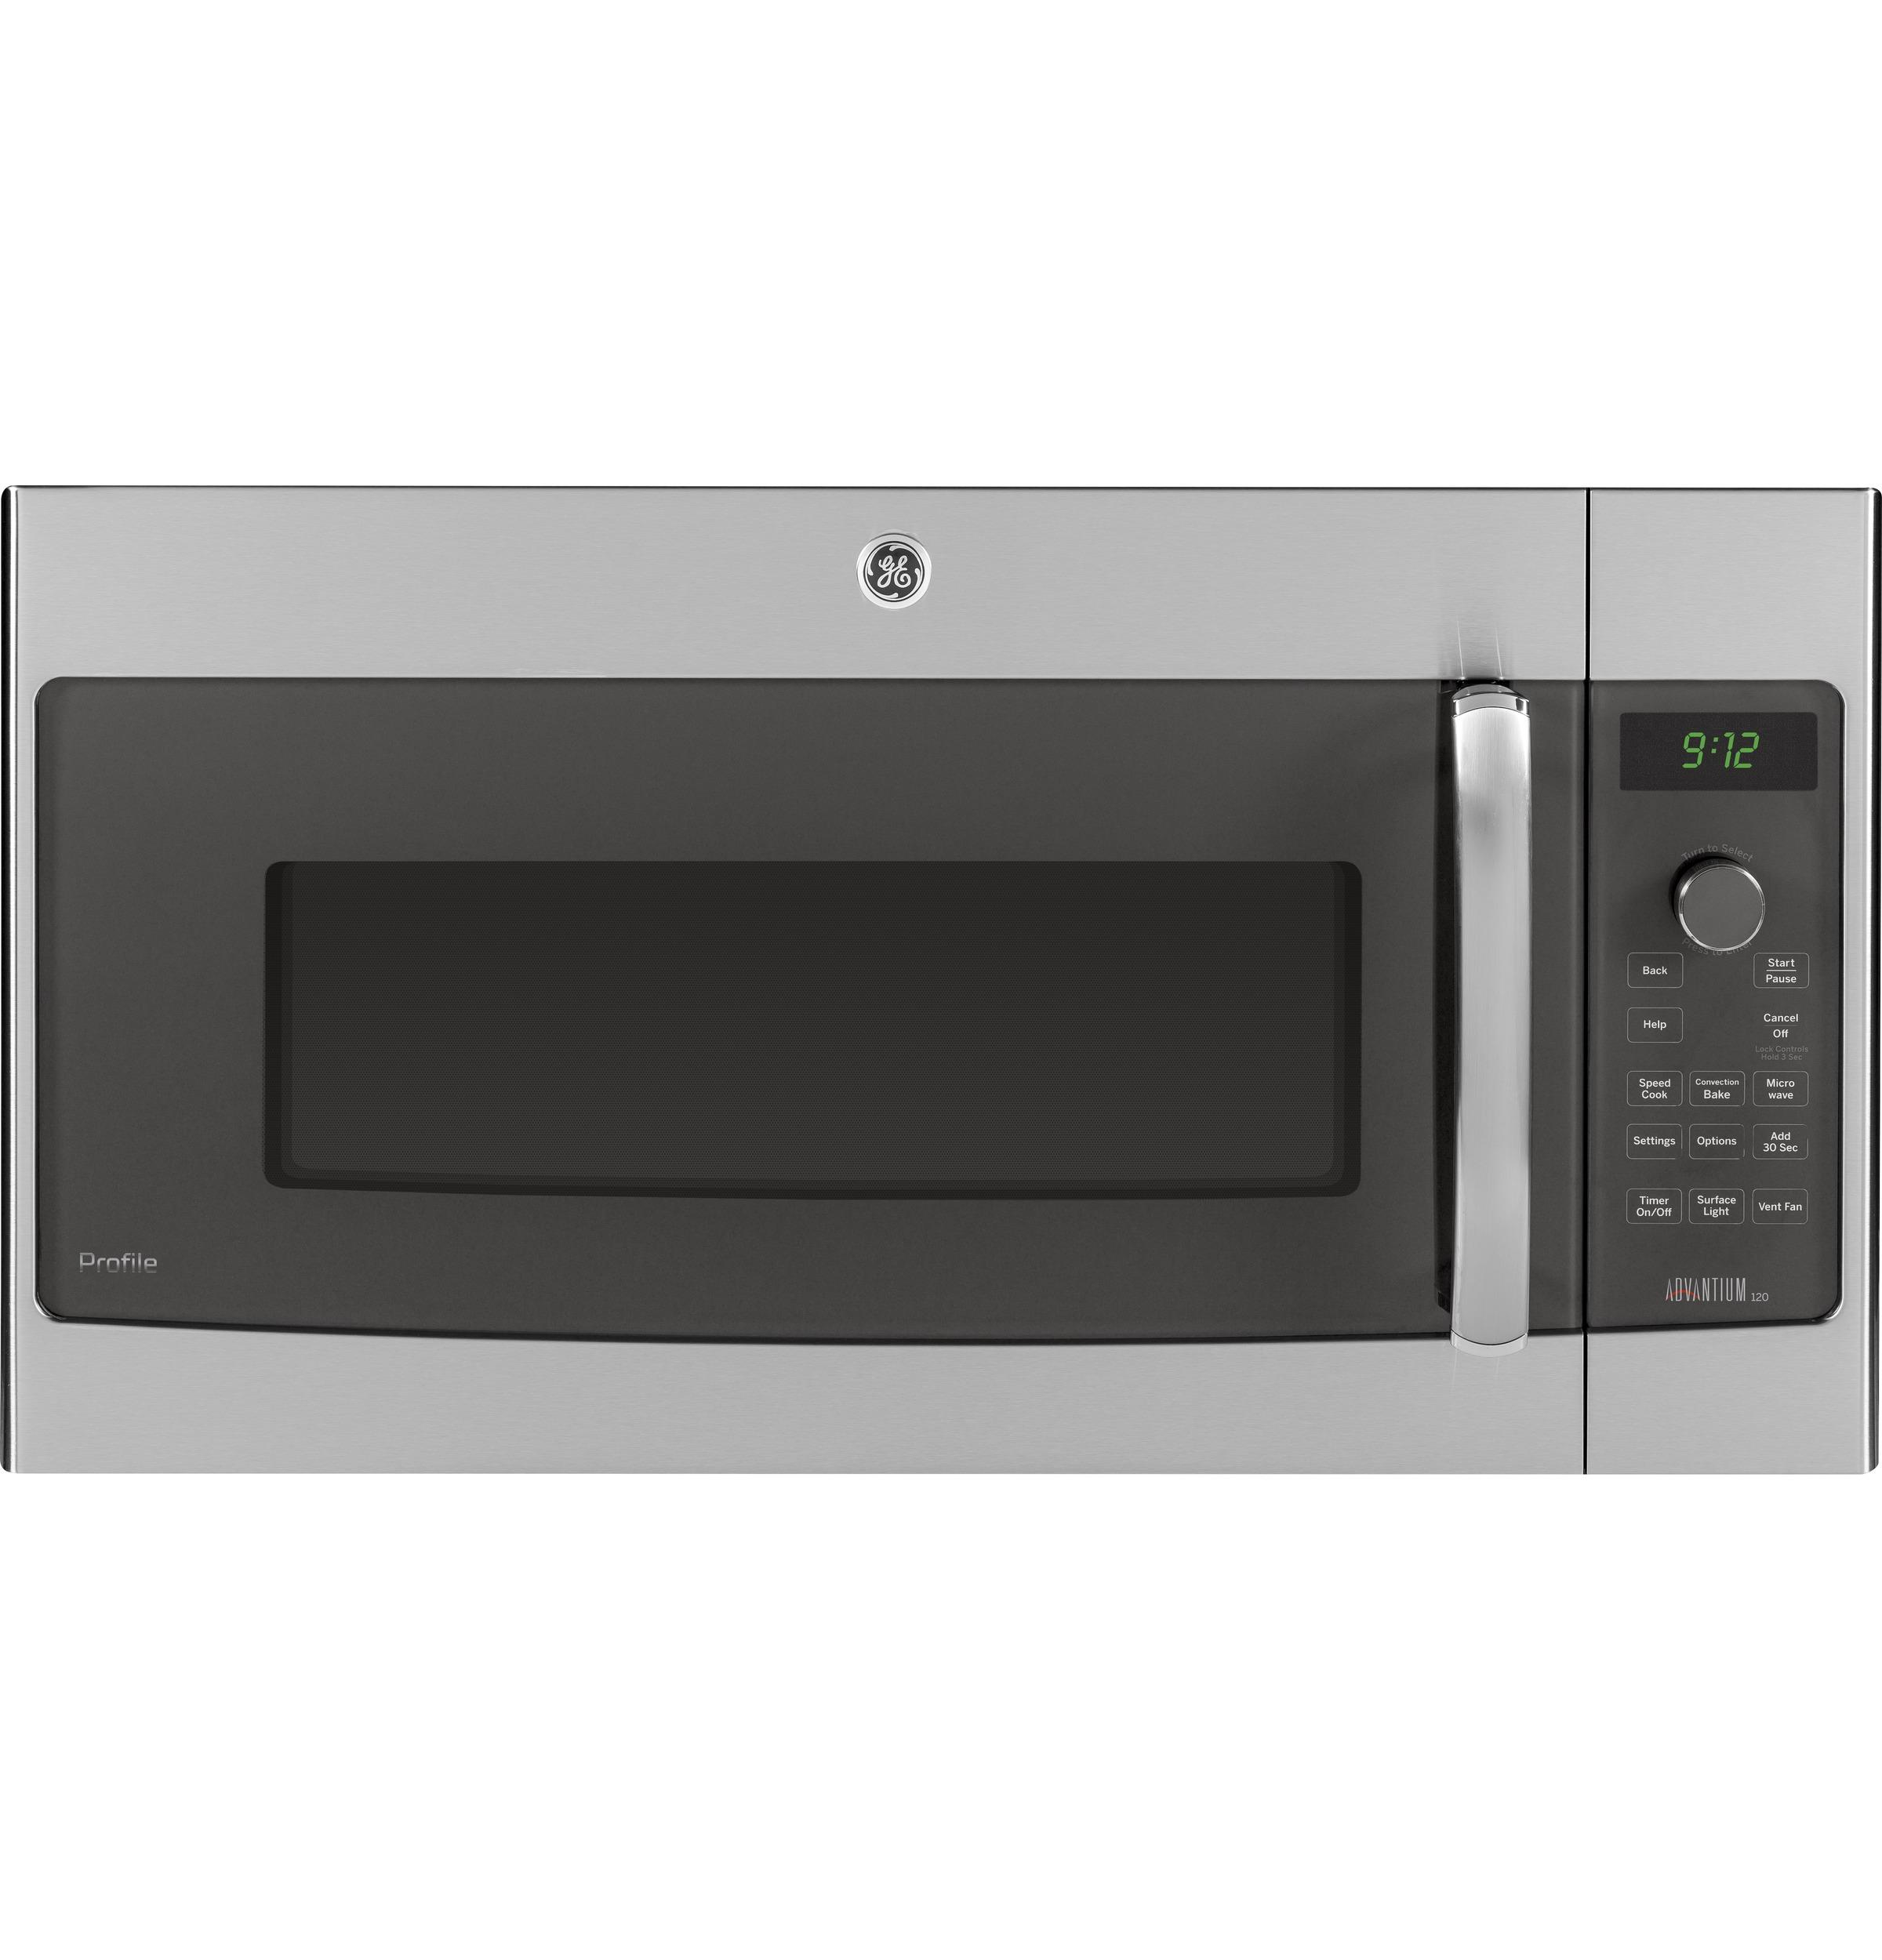 GE Profile Series Over-the-Range Oven with Advantium(R) Technology